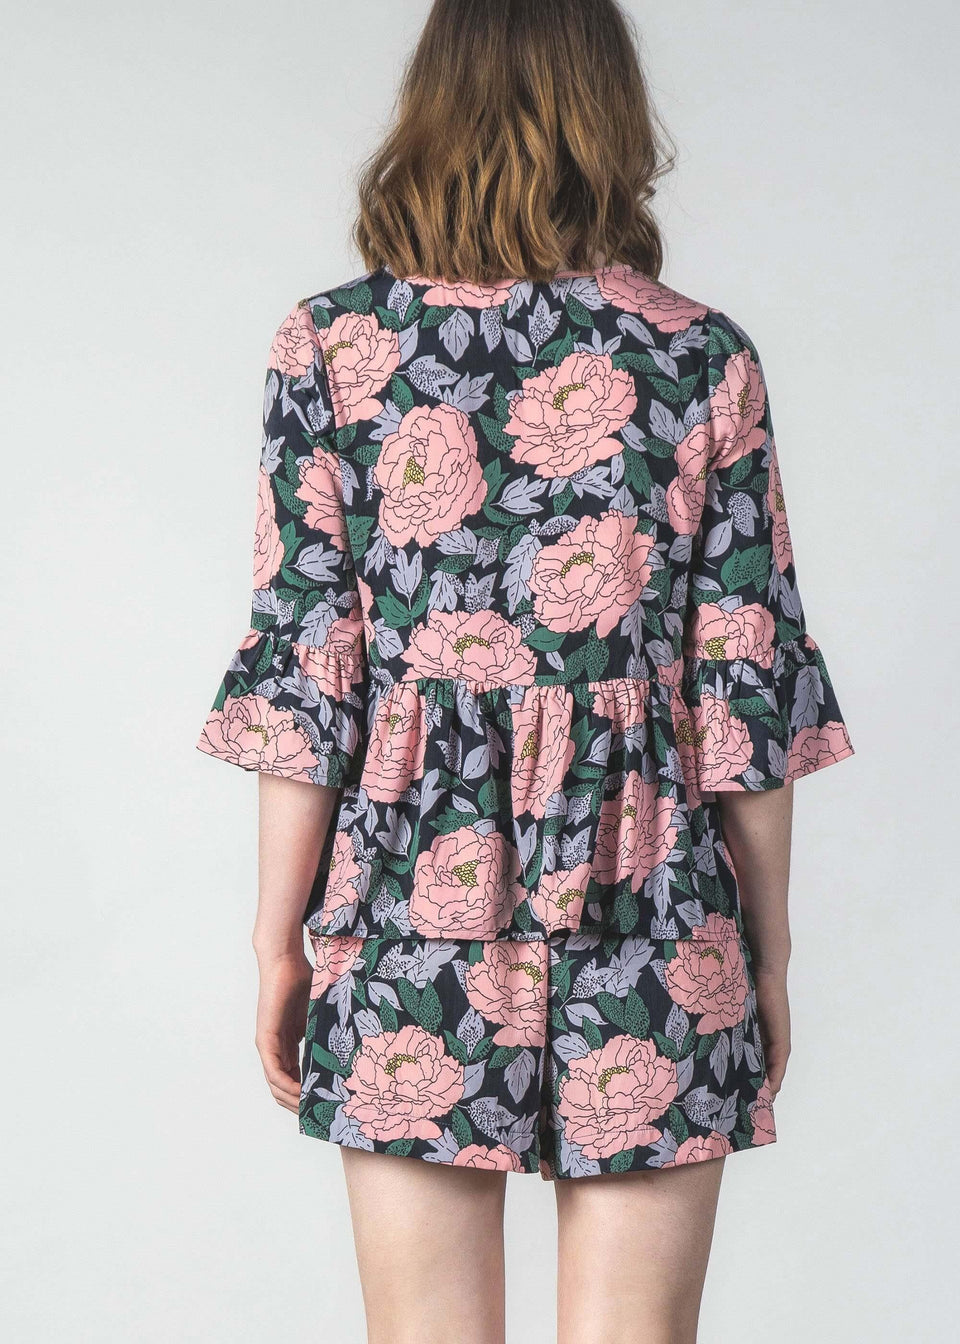 Molly Top Blush Peony - Saint Street